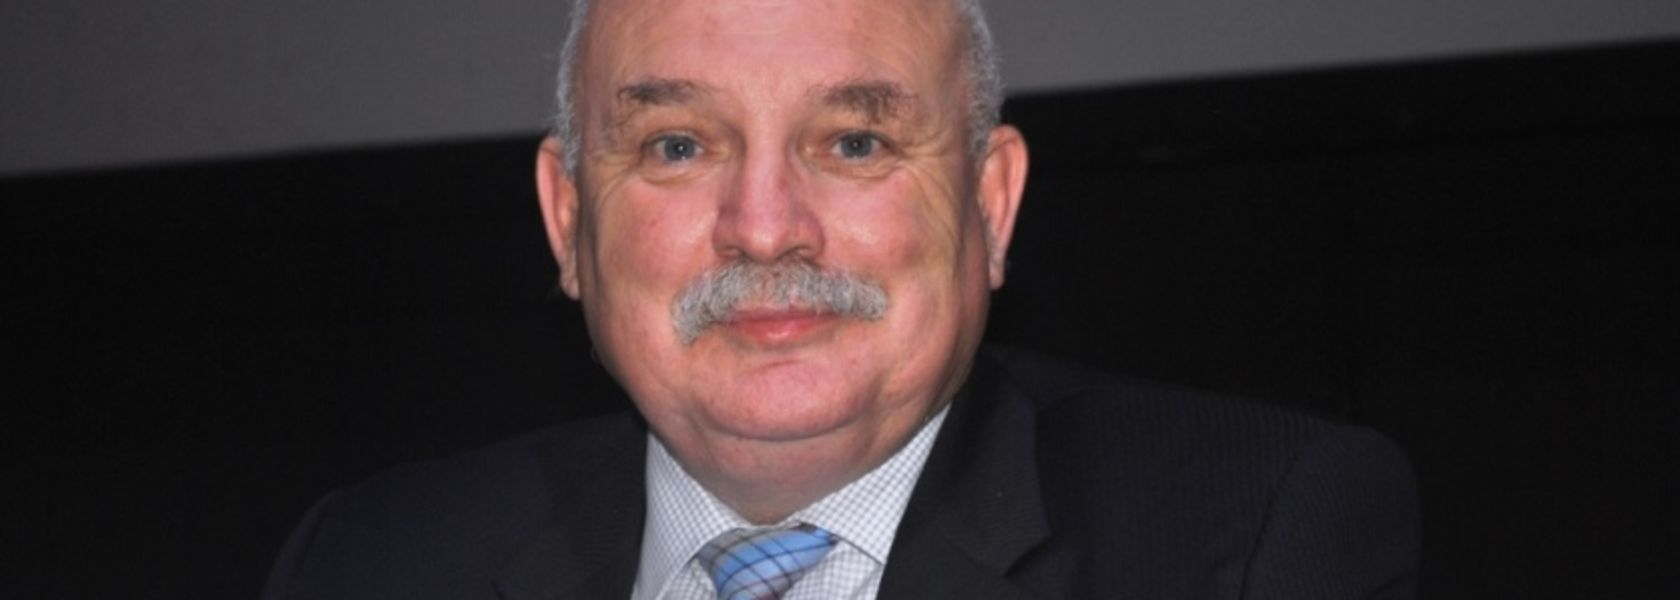 Oil Search wants more PNG LNG benefits - PNG Report